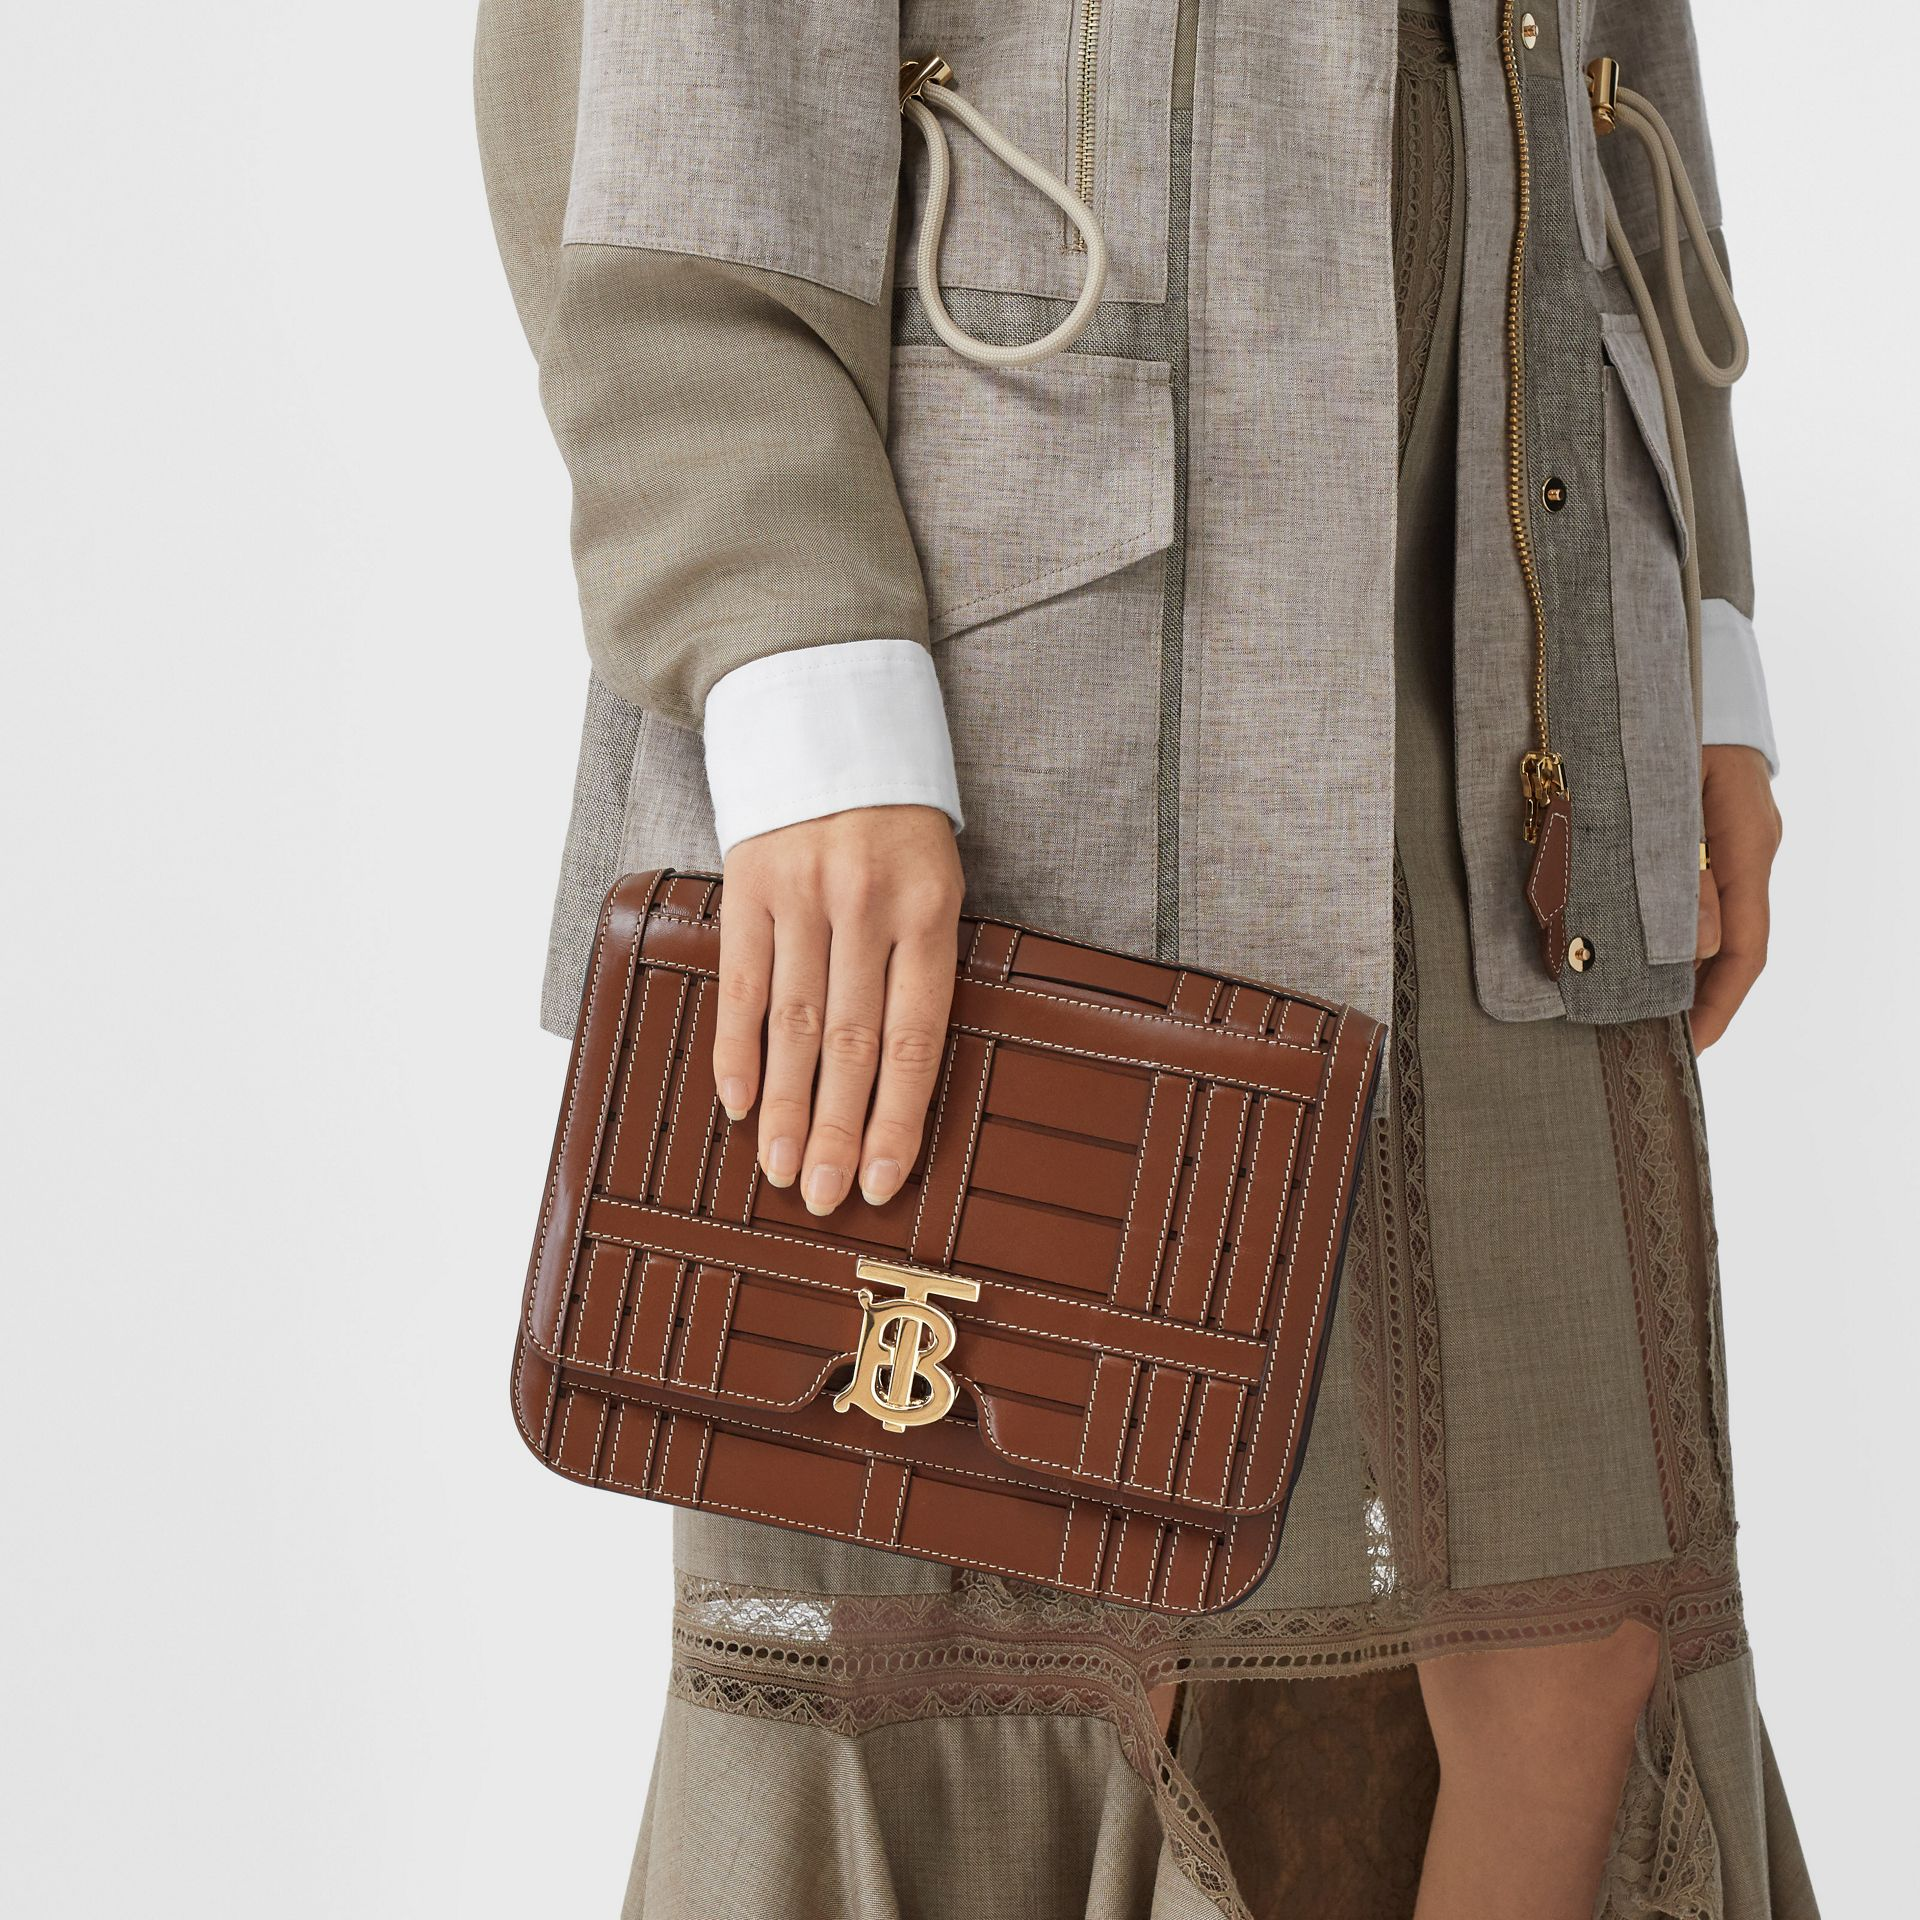 Medium Woven Leather TB Bag in Tan - Women | Burberry - gallery image 8